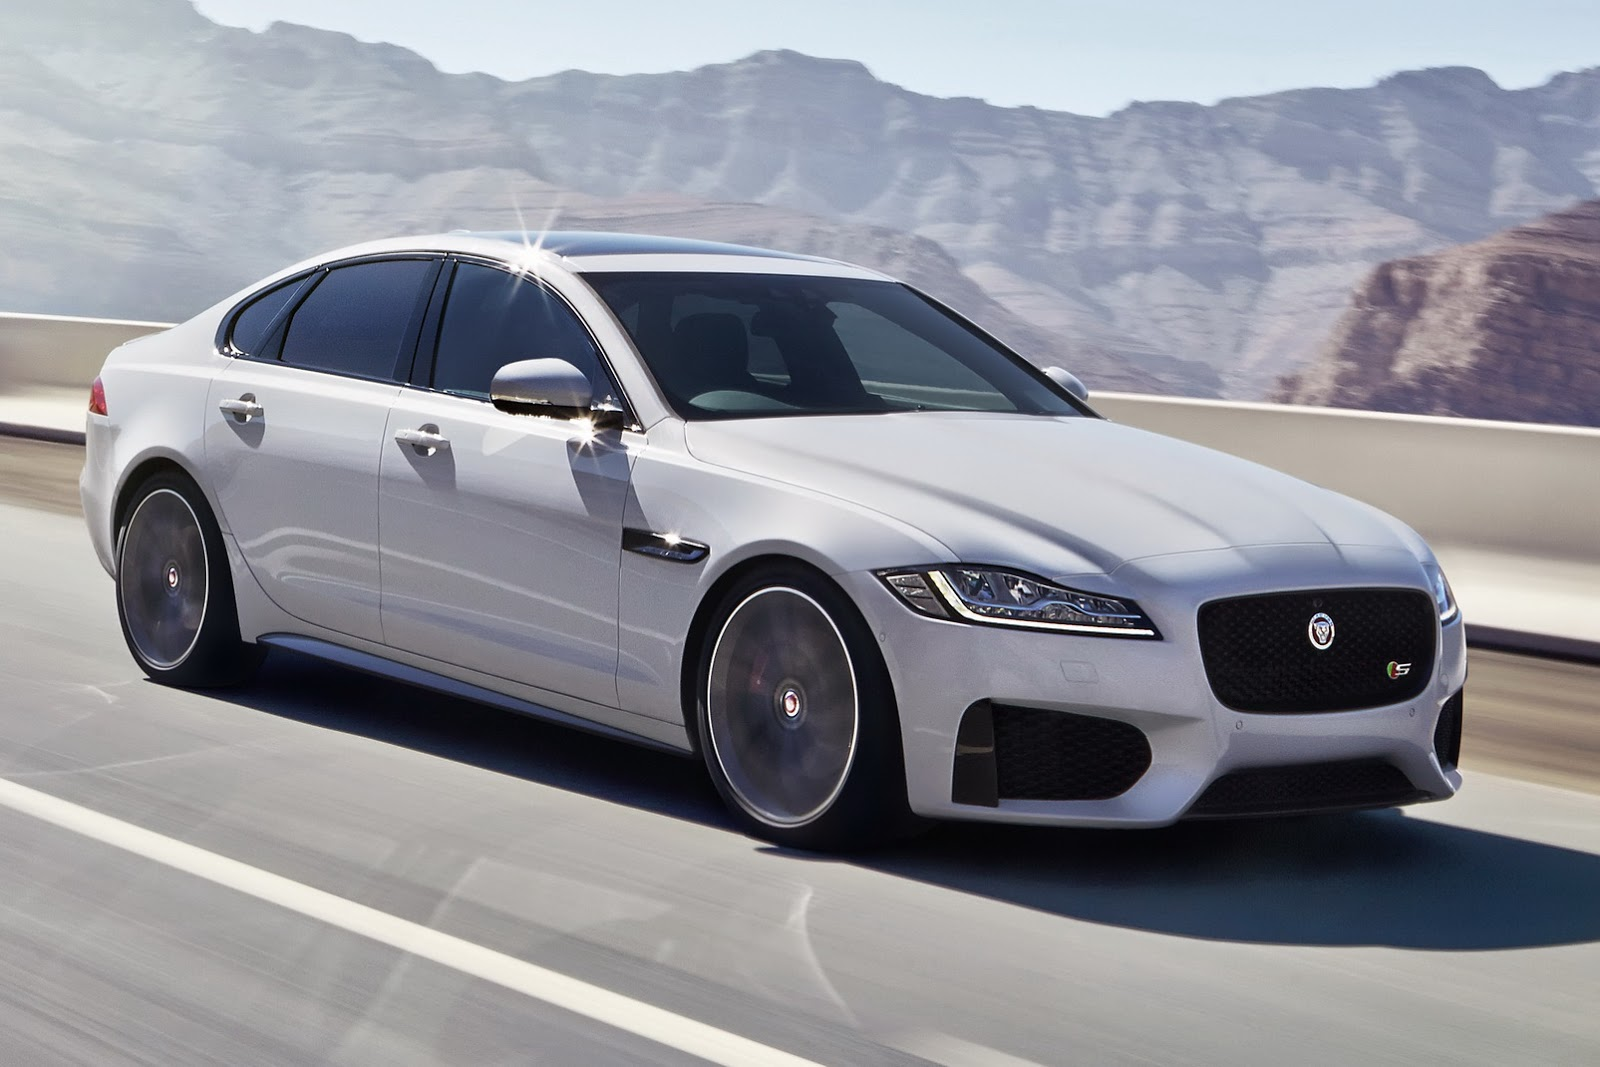 2019 Jaguar XF photo - 1